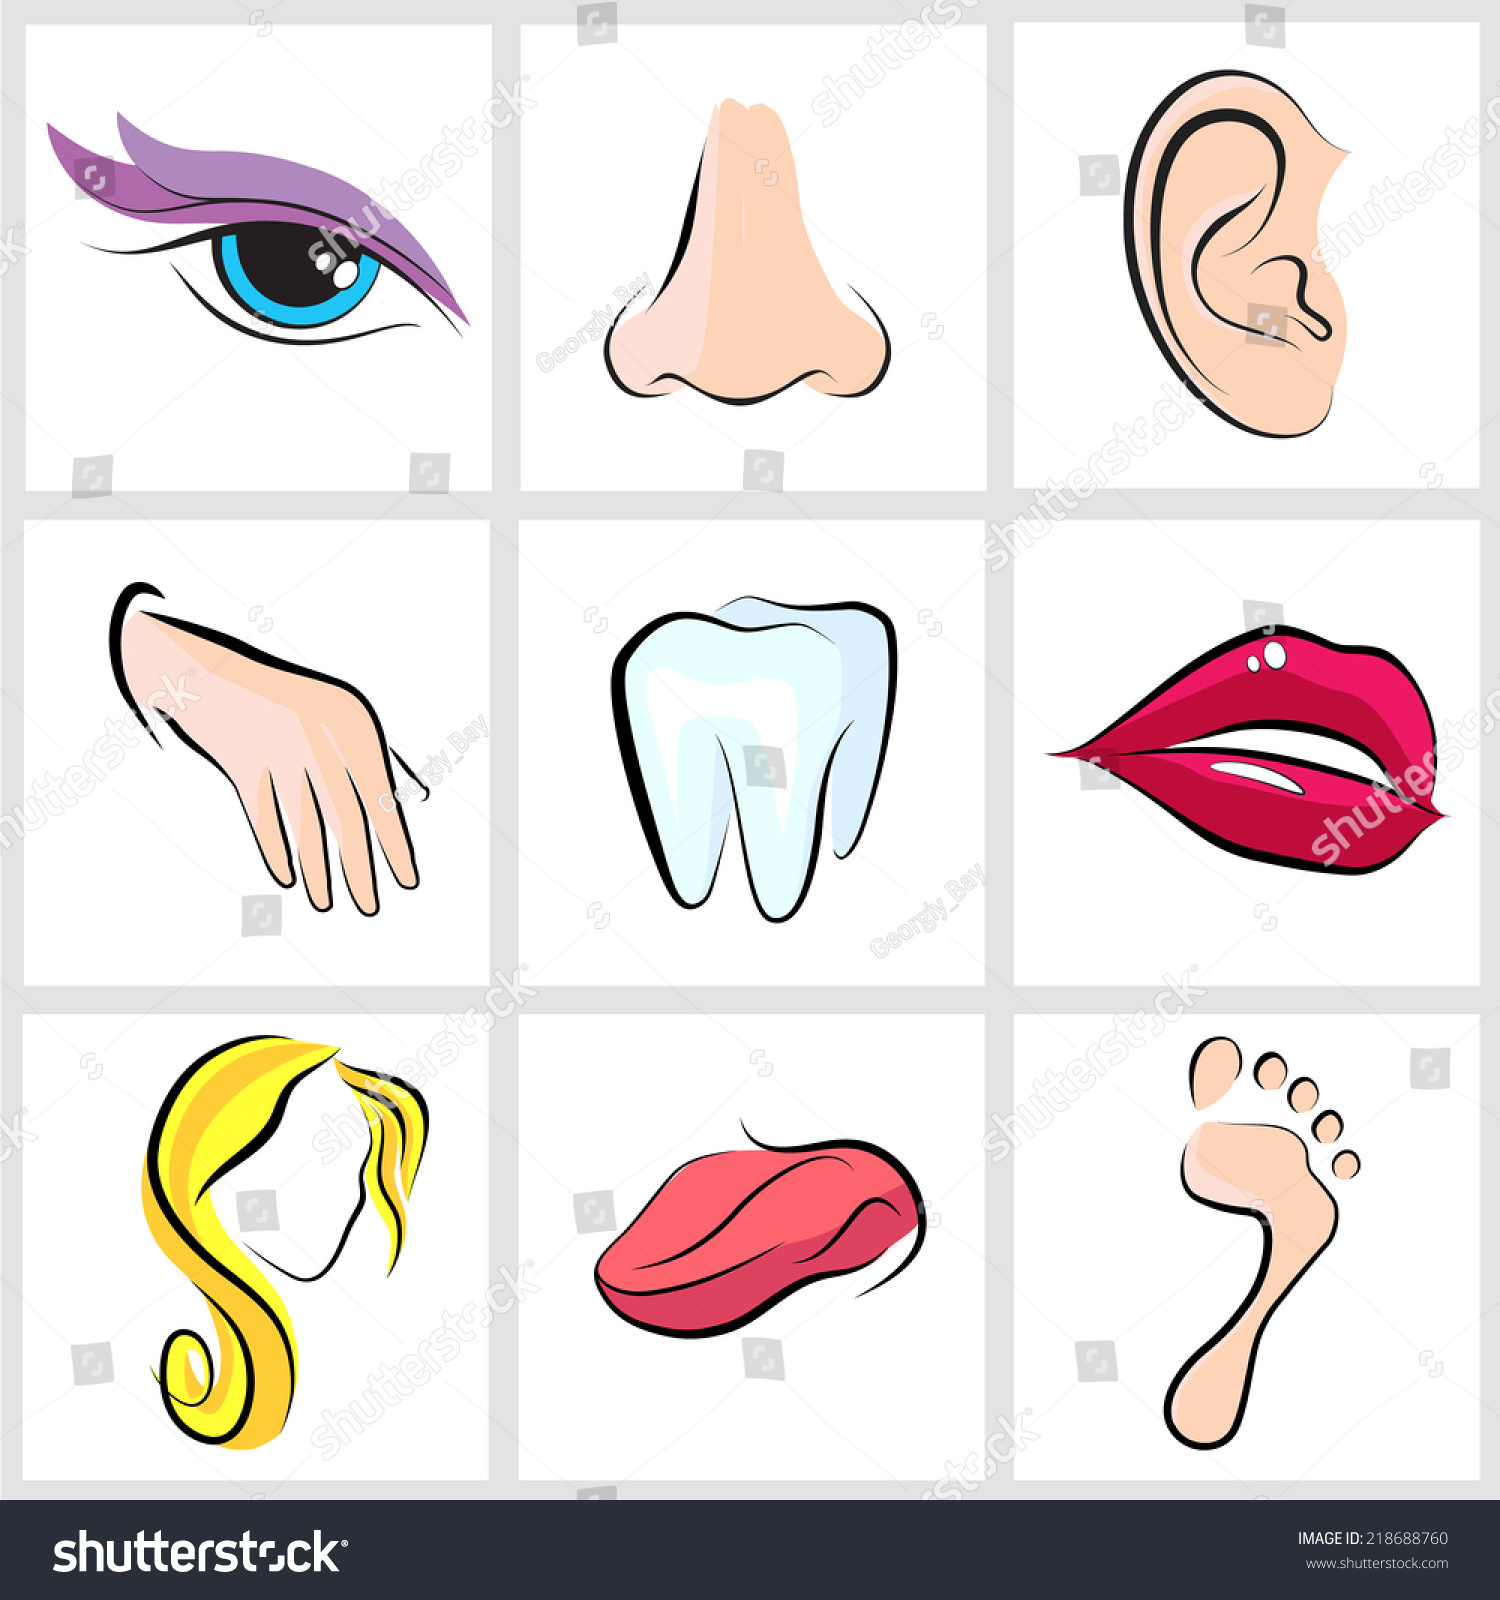 Ear Cworksheet